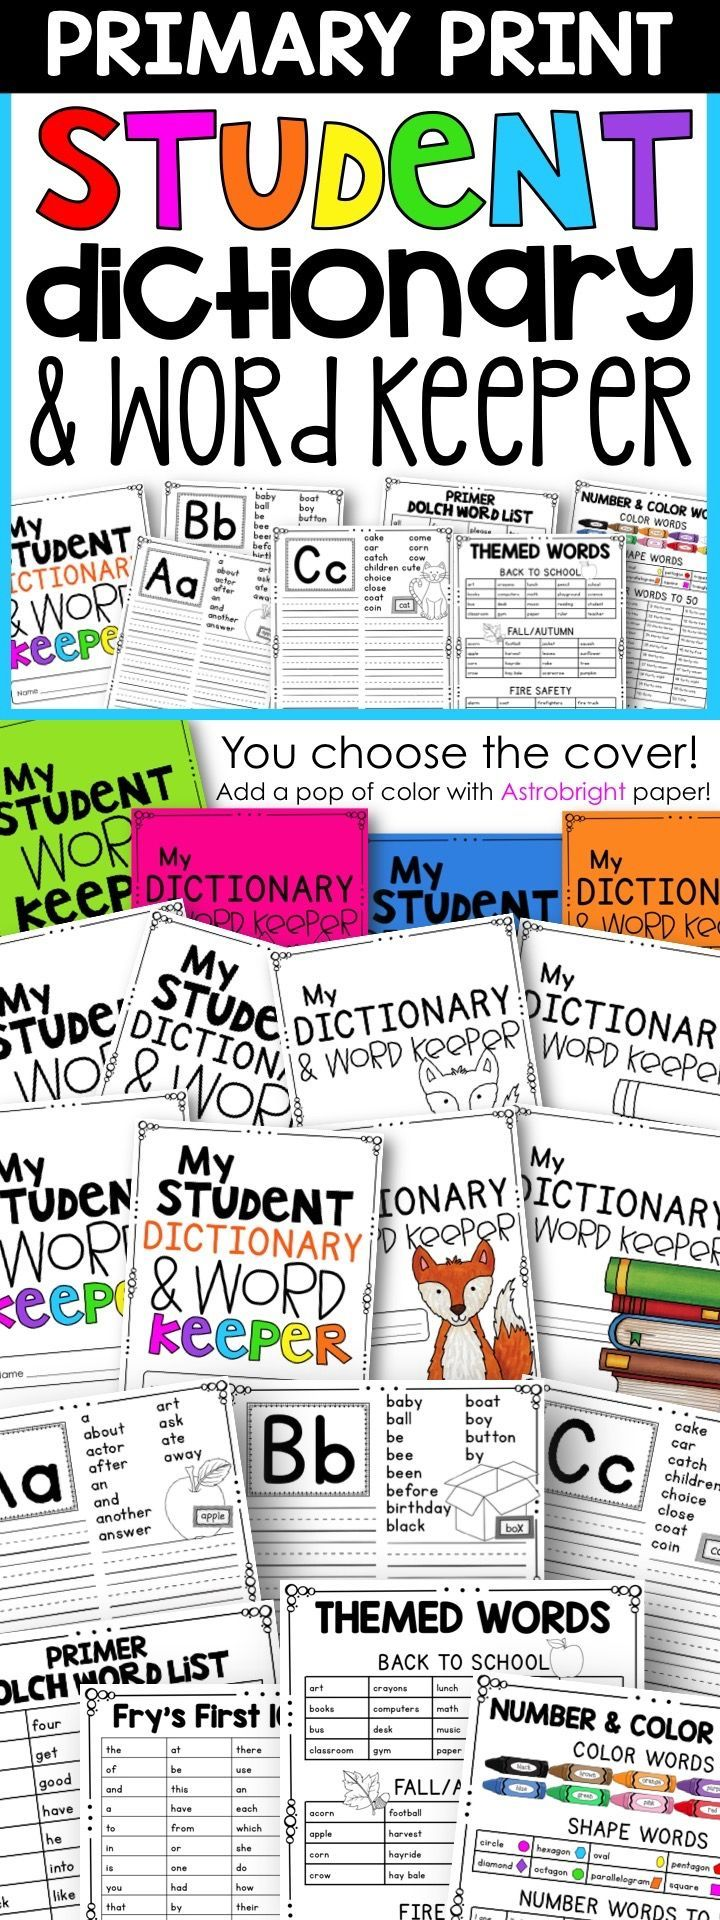 This Student Dictionary and Word Keeper allows your students to store their correctly spelled words in one place throughout the year. It includes both the Dolch and Fry word lists, as well as themed word lists, weather words, shape words, and even number words!